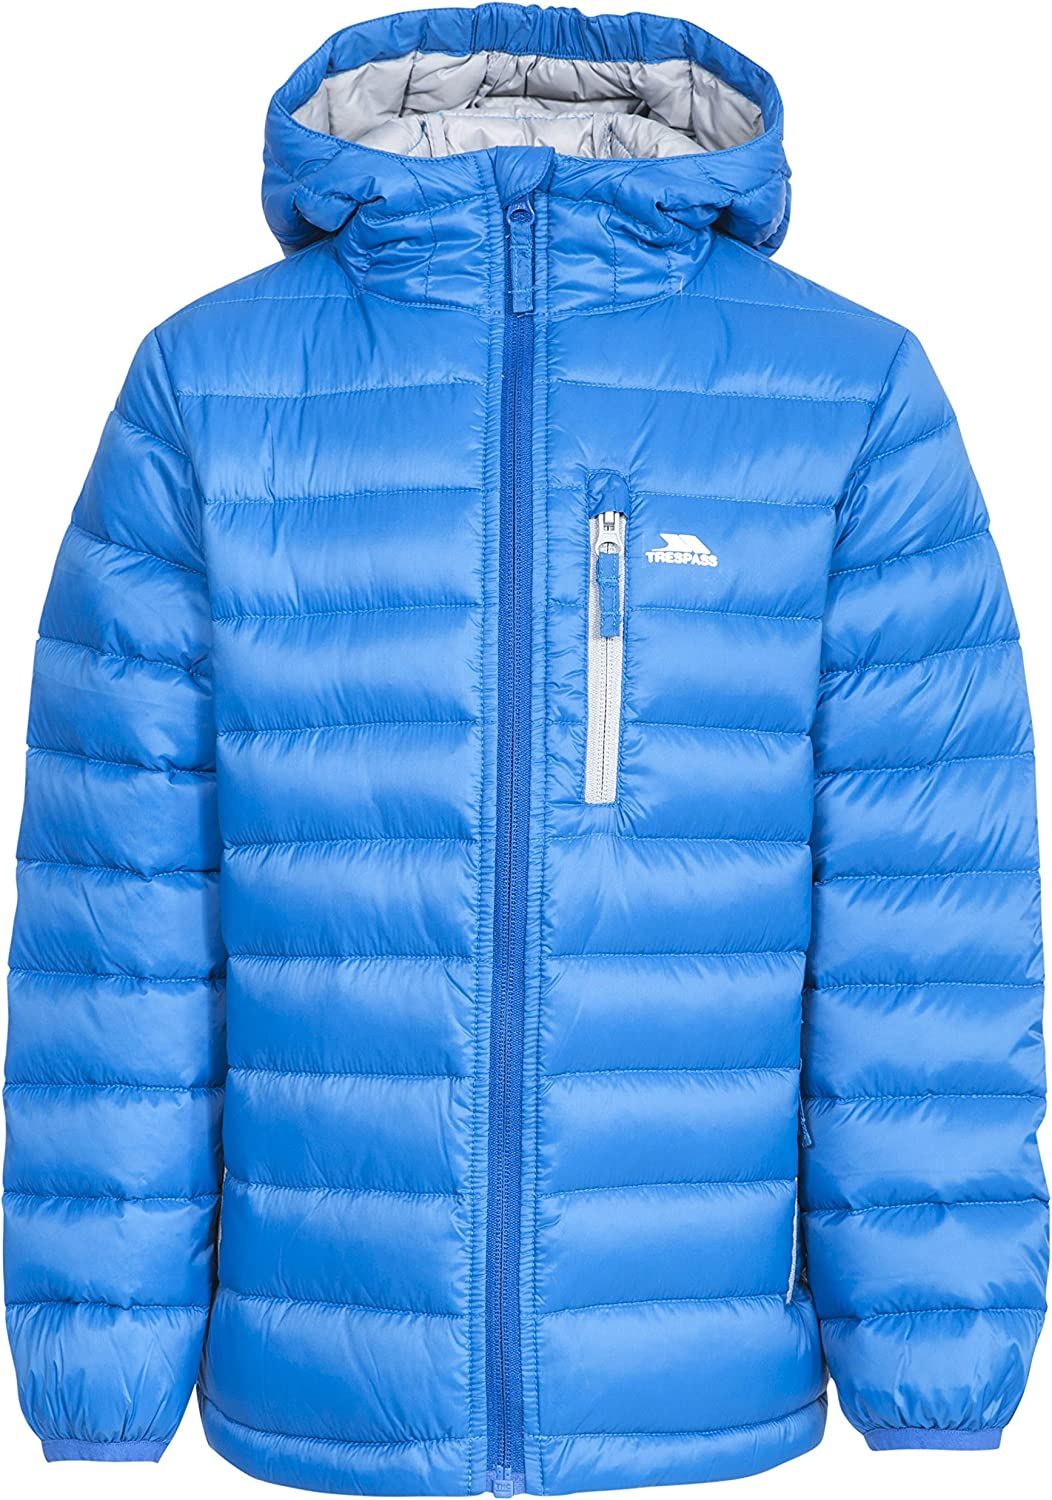 TP3910 Trespass Childrens//Kids Morley Down Jacket